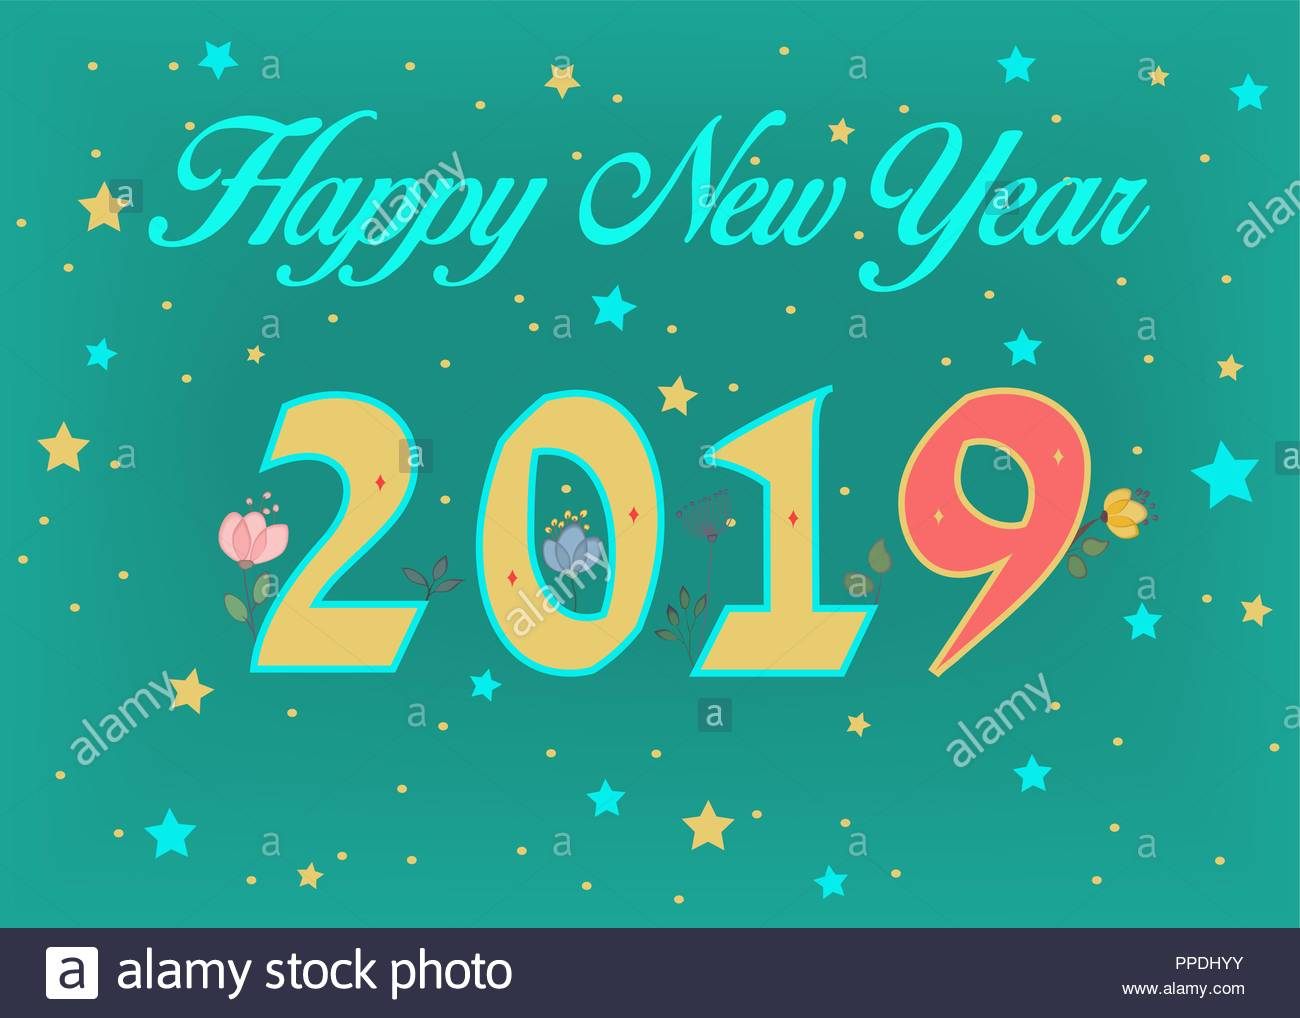 happy new year 2019 artistic yellow and red number with decor of graceful watercolor flowers green background with stars vector illustration